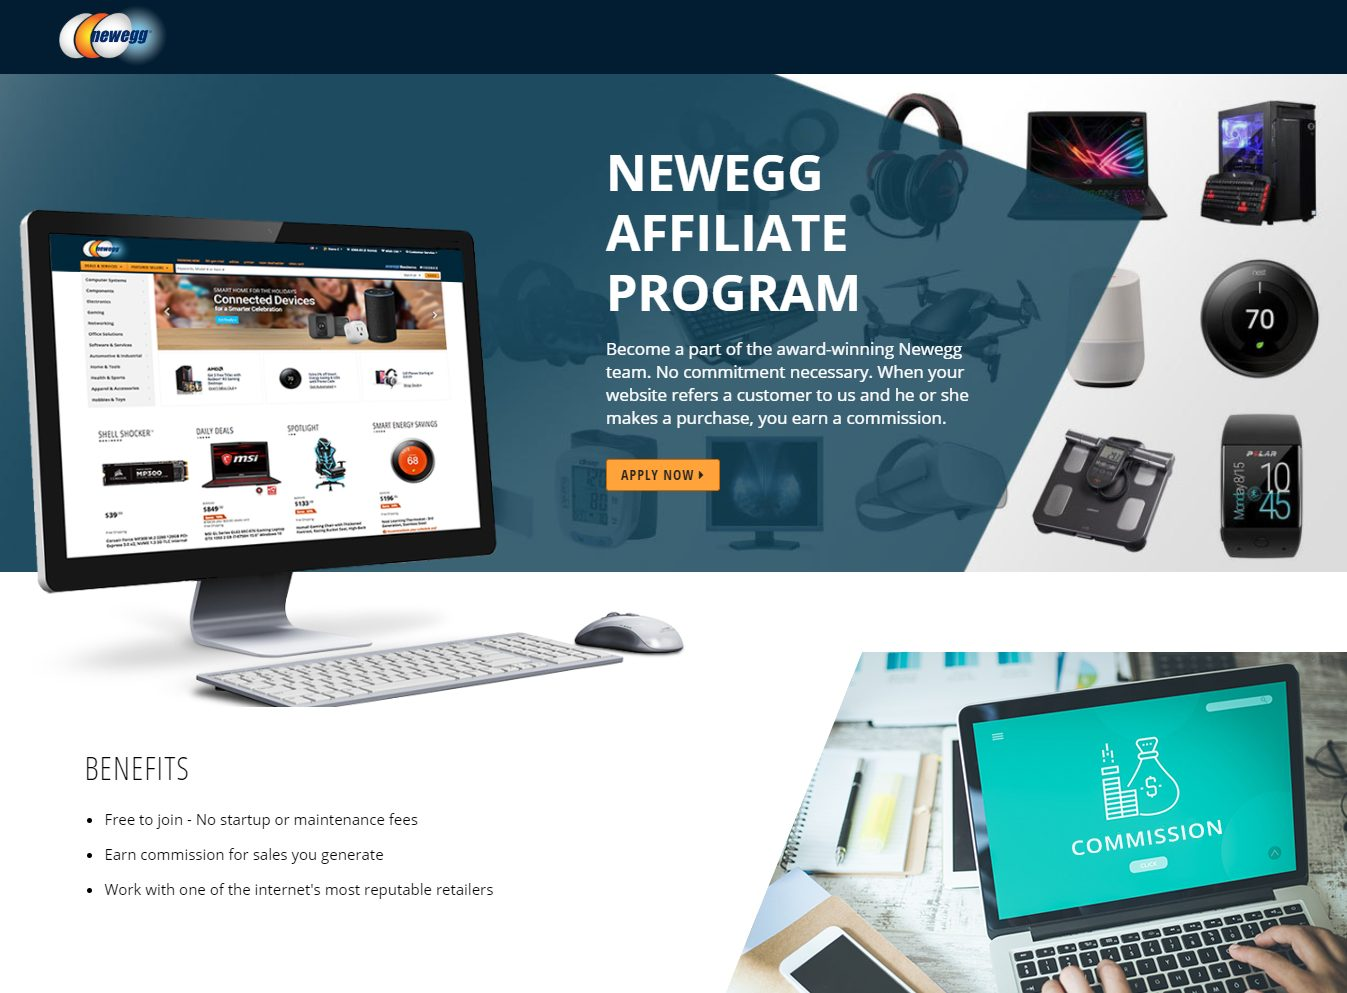 Newegg Affiliate Program